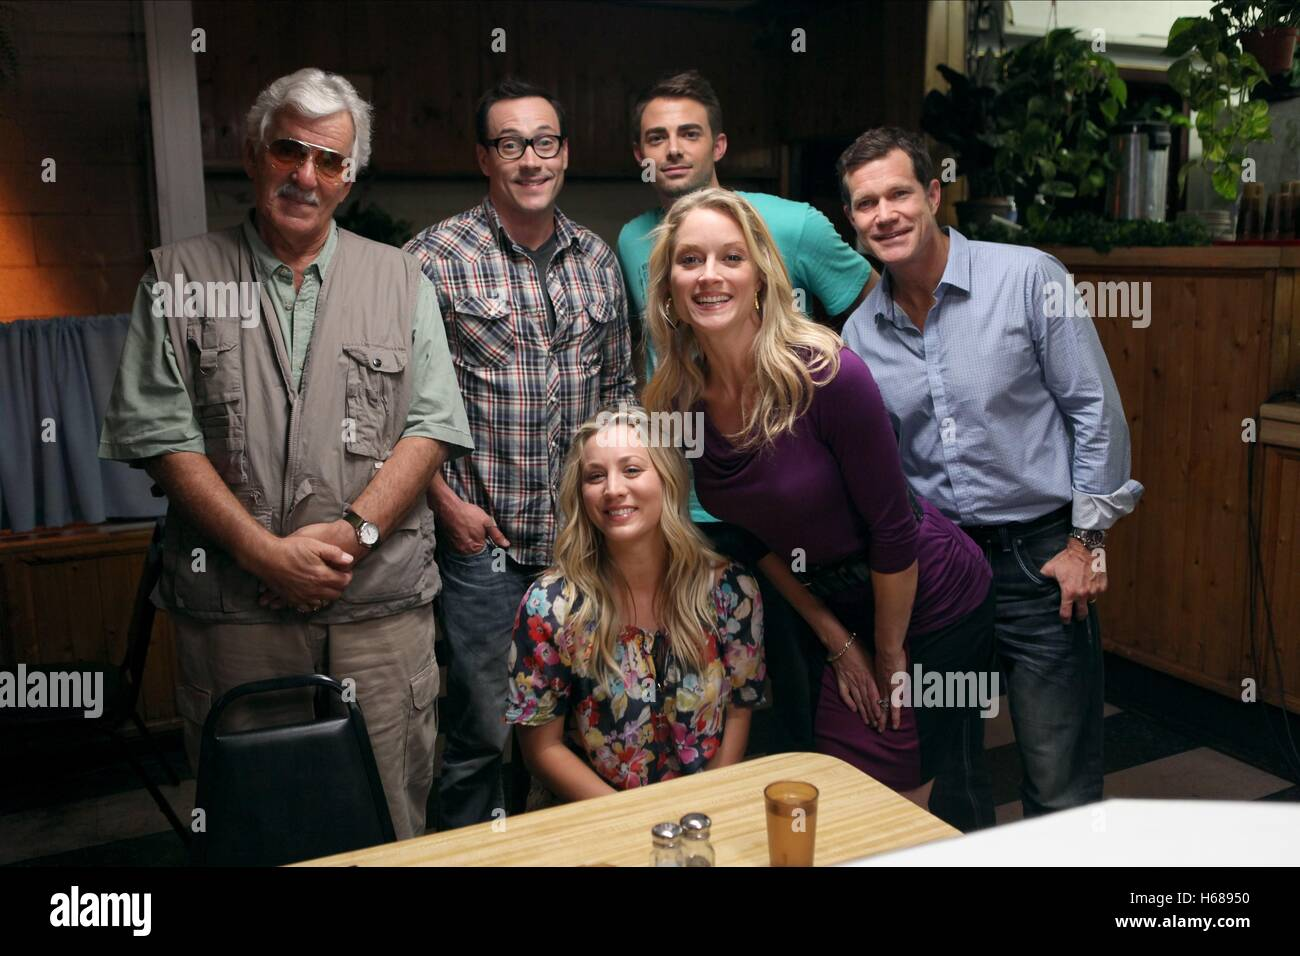 DENNIS FARINA CHRIS KLEIN KALEY CUOCO JONATHAN BENNETT TERI POLO & DYLAN WALSH AUTHORS ANONYMOUS (2014) - Stock Image